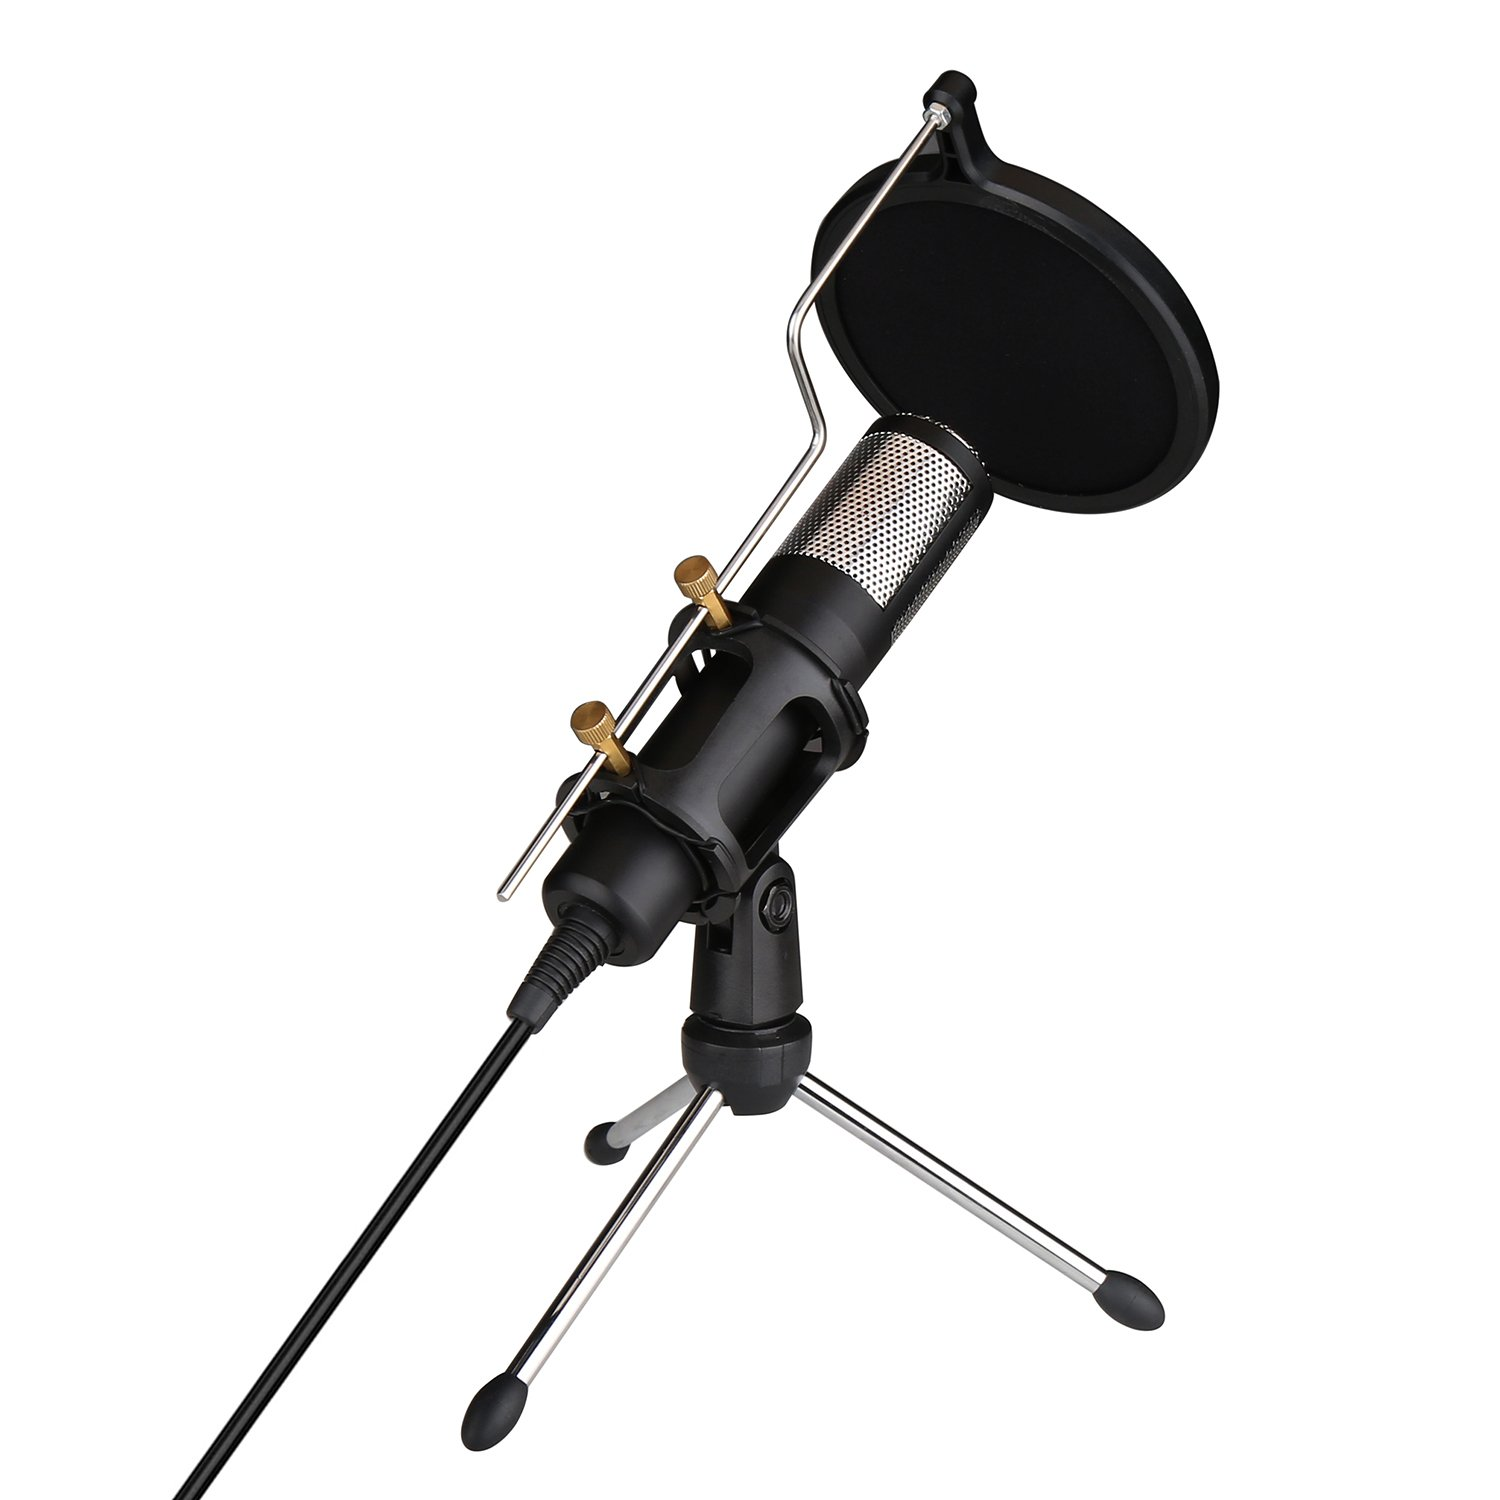 USB Microphone, CALLANY PC Condenser Microphone for Online Chatting Podcast Vocal Recording with Tripod Stand